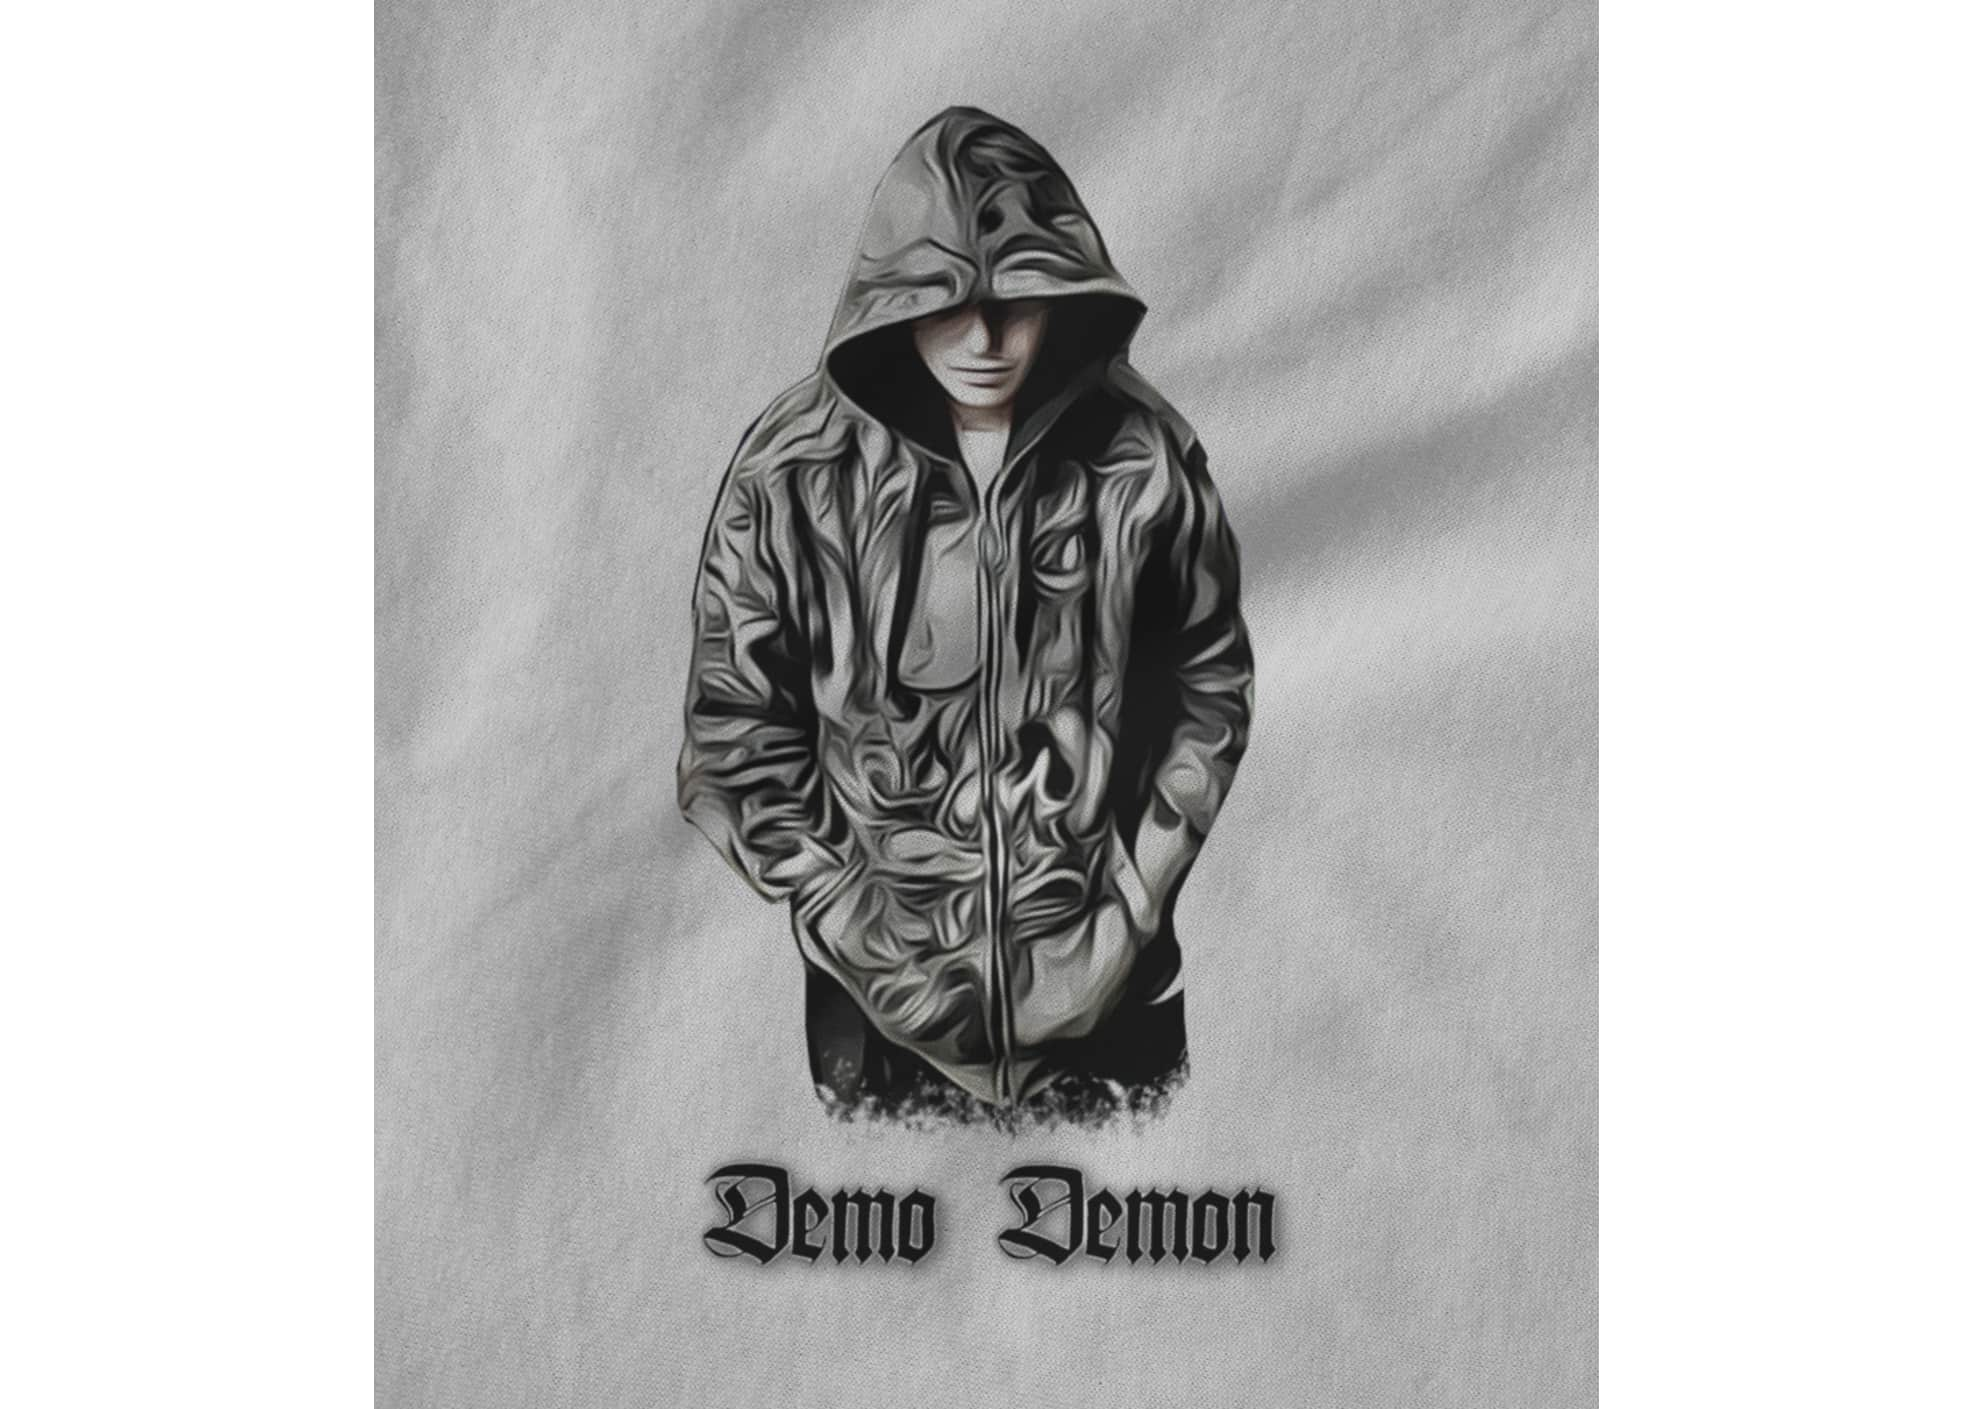 Demo demon the ghost 1521172627